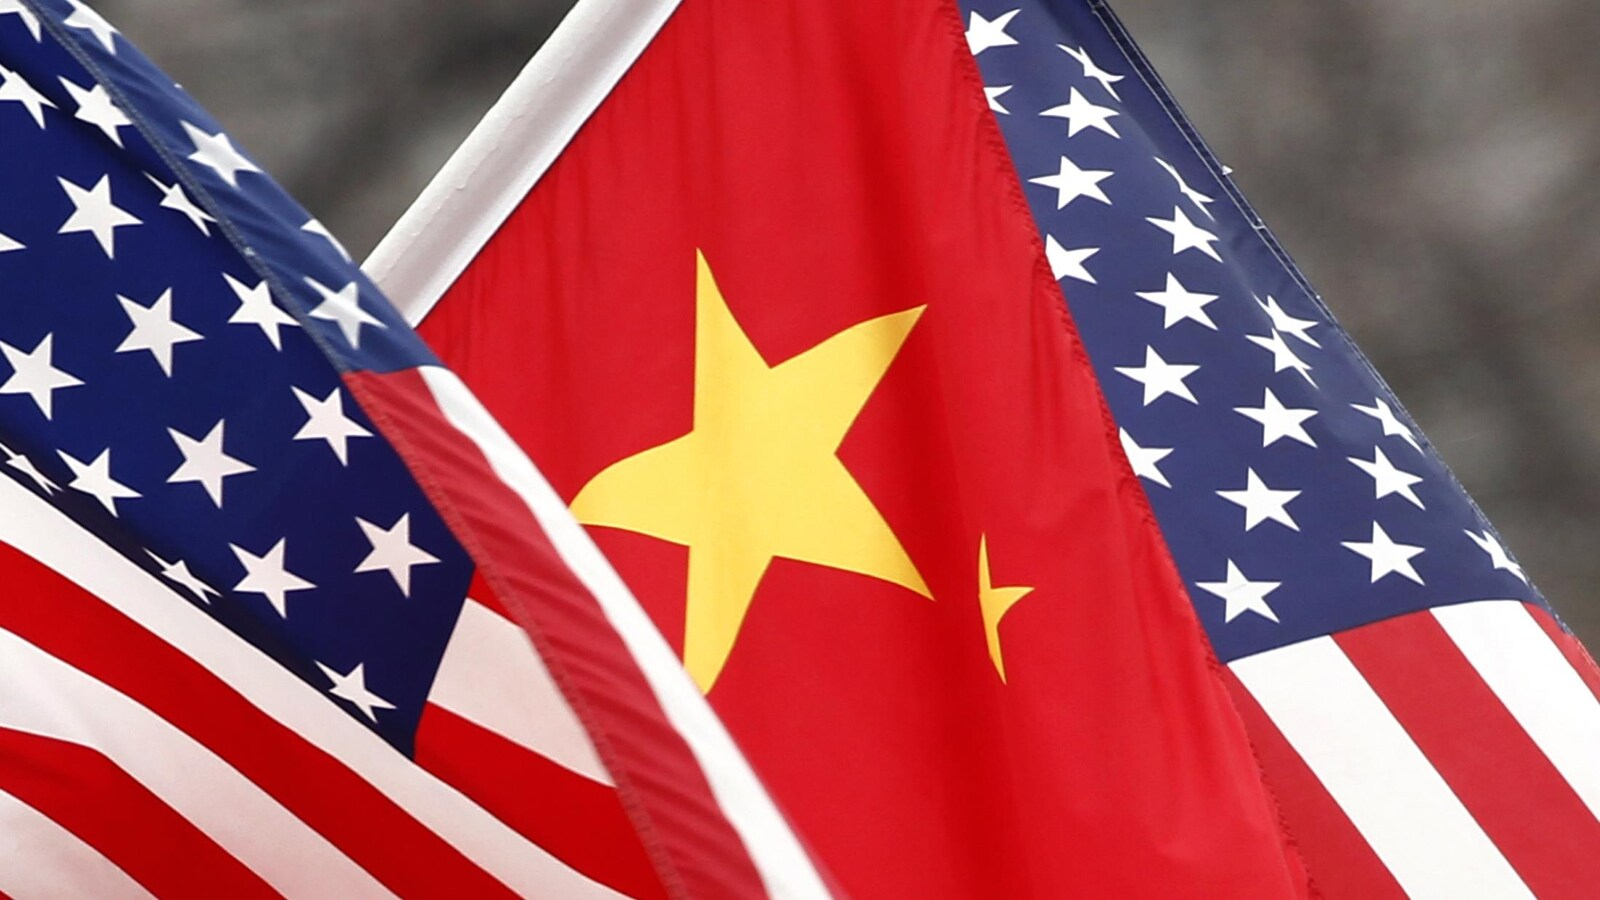 La Chine se dit prête à affronter Washington — Guerre commerciale